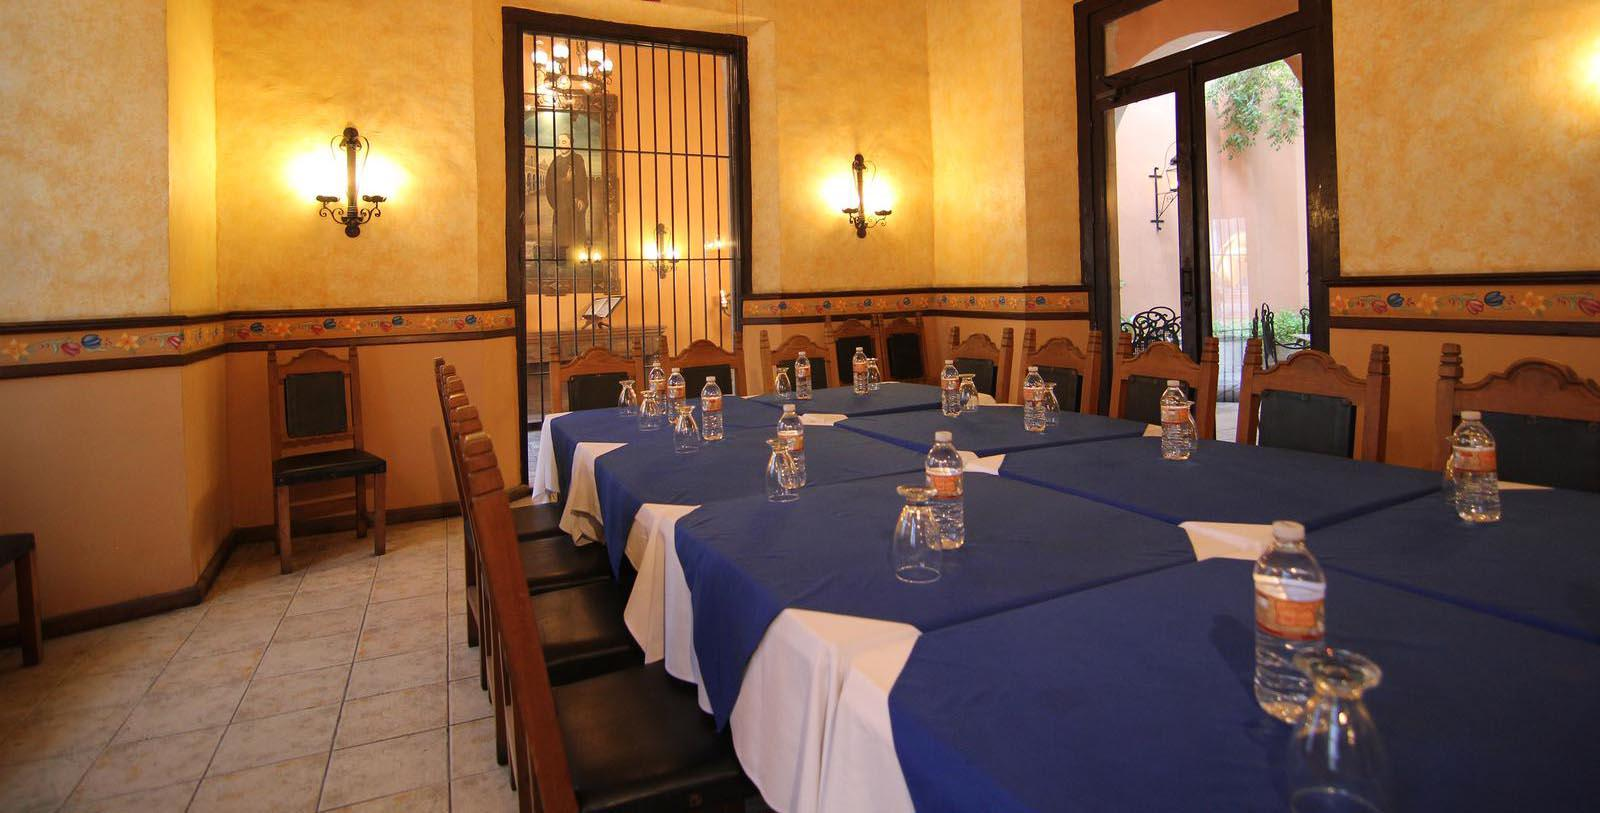 Image of Event Space La Misión de Fray Diego, 1867, Member of Historic Hotels Worldwide, in Merida, Mexico, Experience